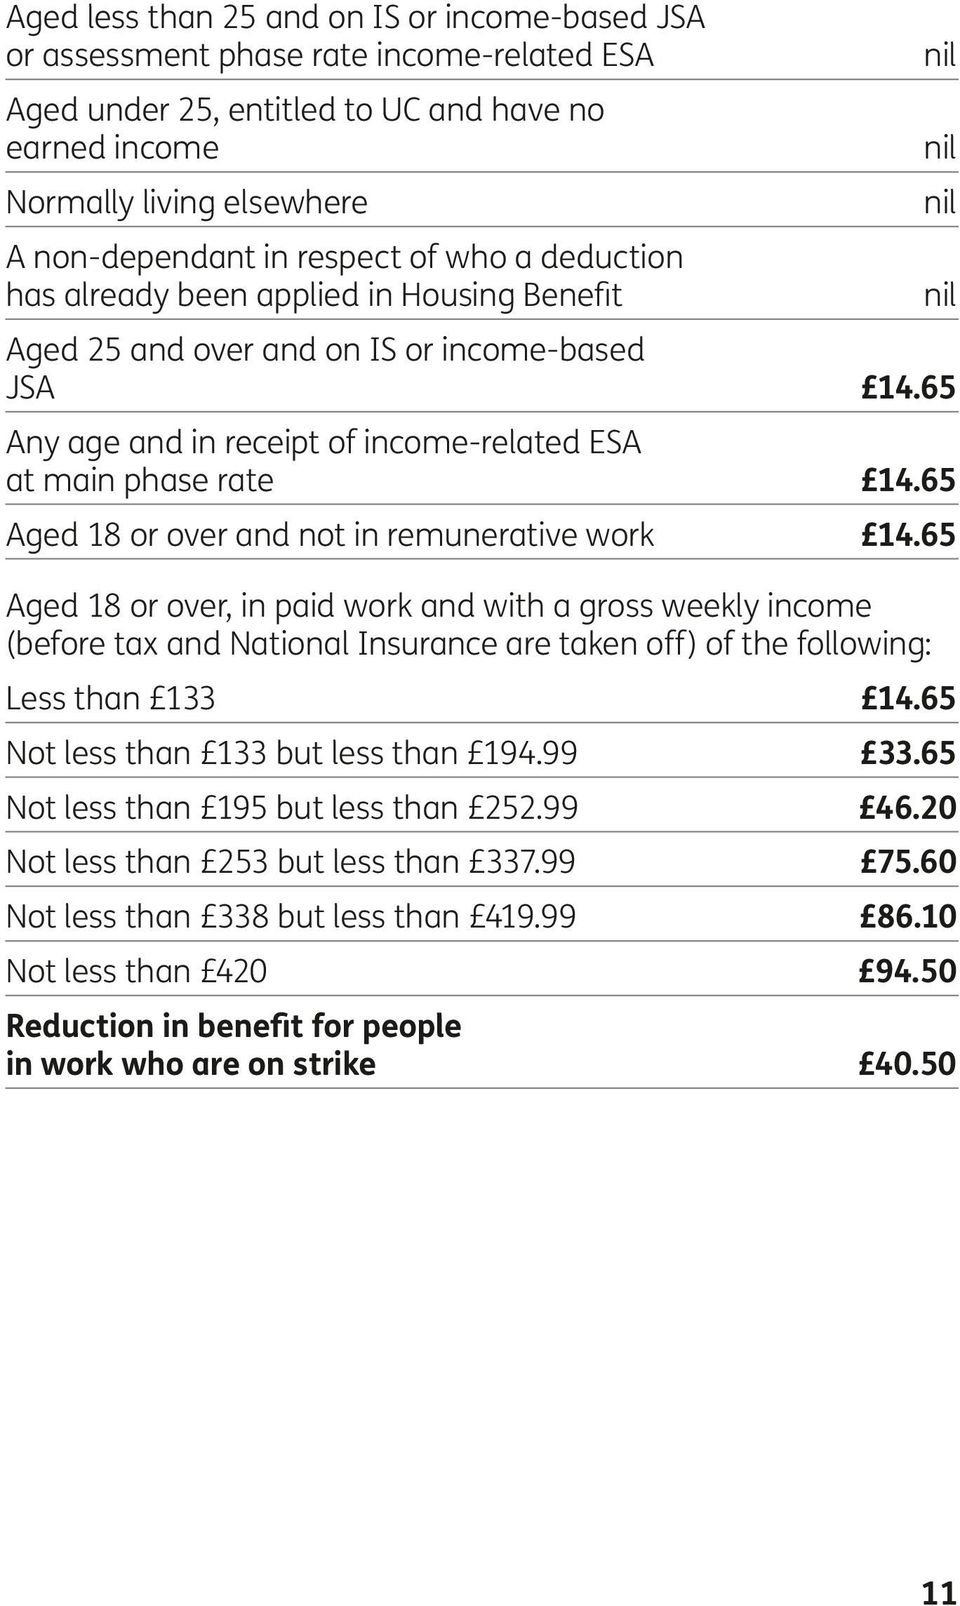 65 Aged 18 or over and not in remunerative work 14.65 Aged 18 or over, in paid work and with a gross weekly income (before tax and National Insurance are taken off) of the following: Less than 133 14.